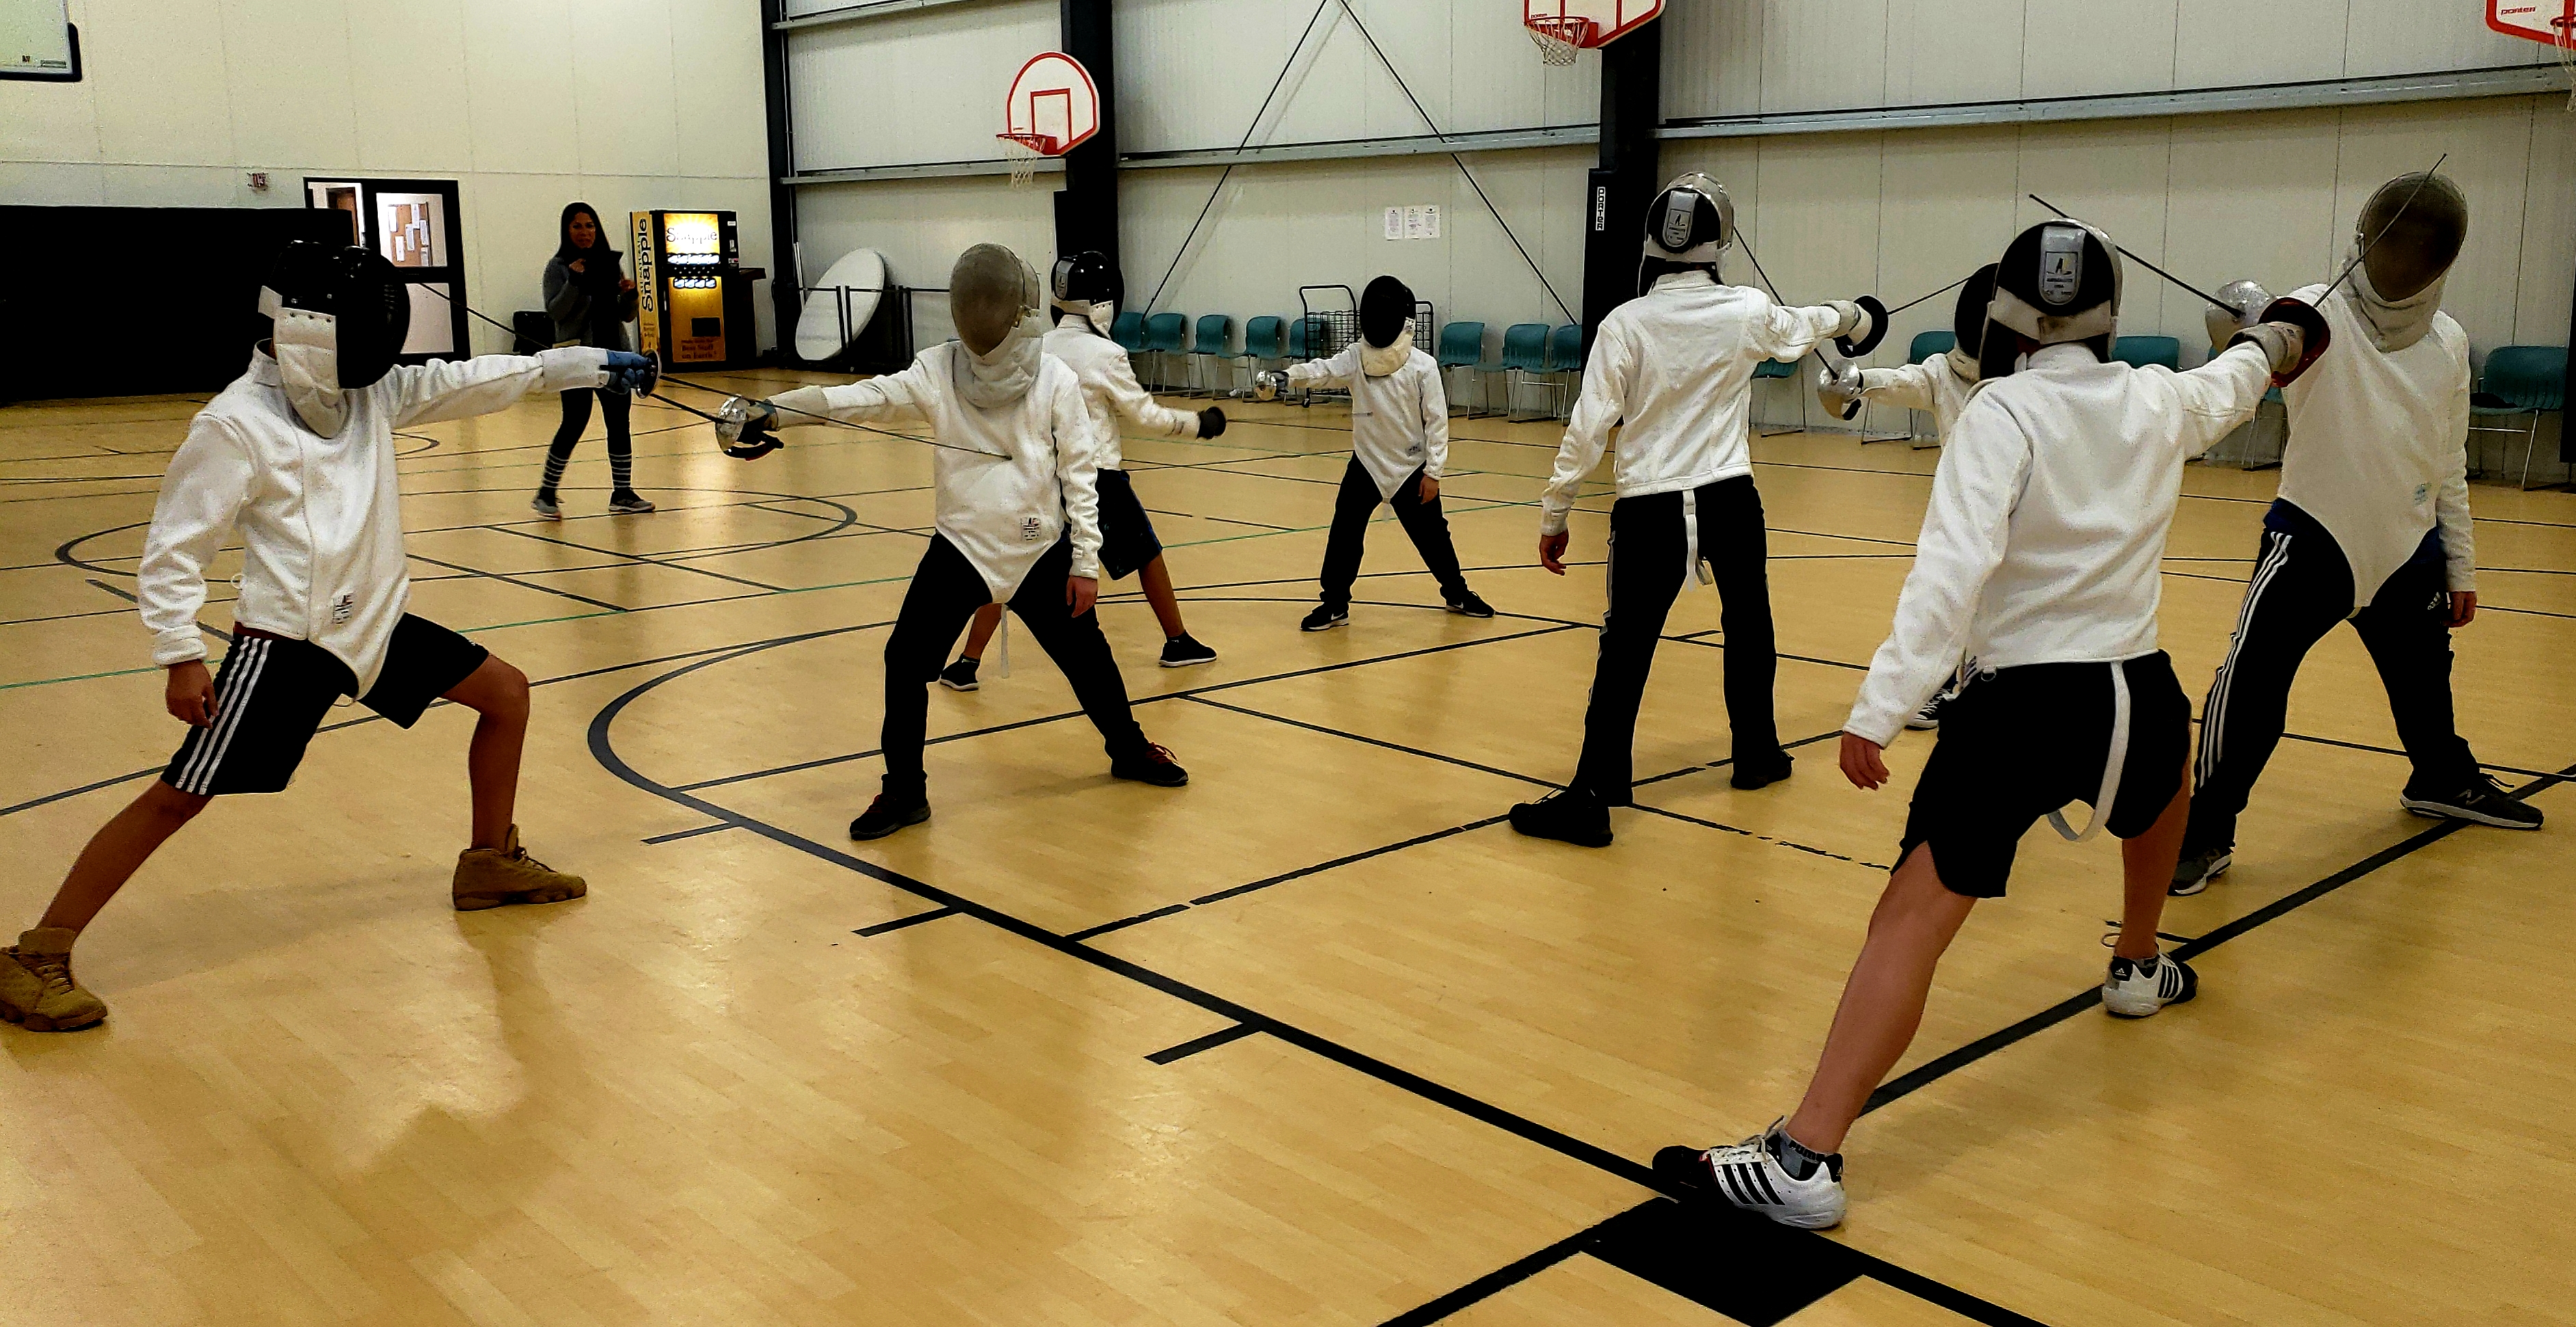 Home Page National Fencing Nfa New Jersey Fencing Club